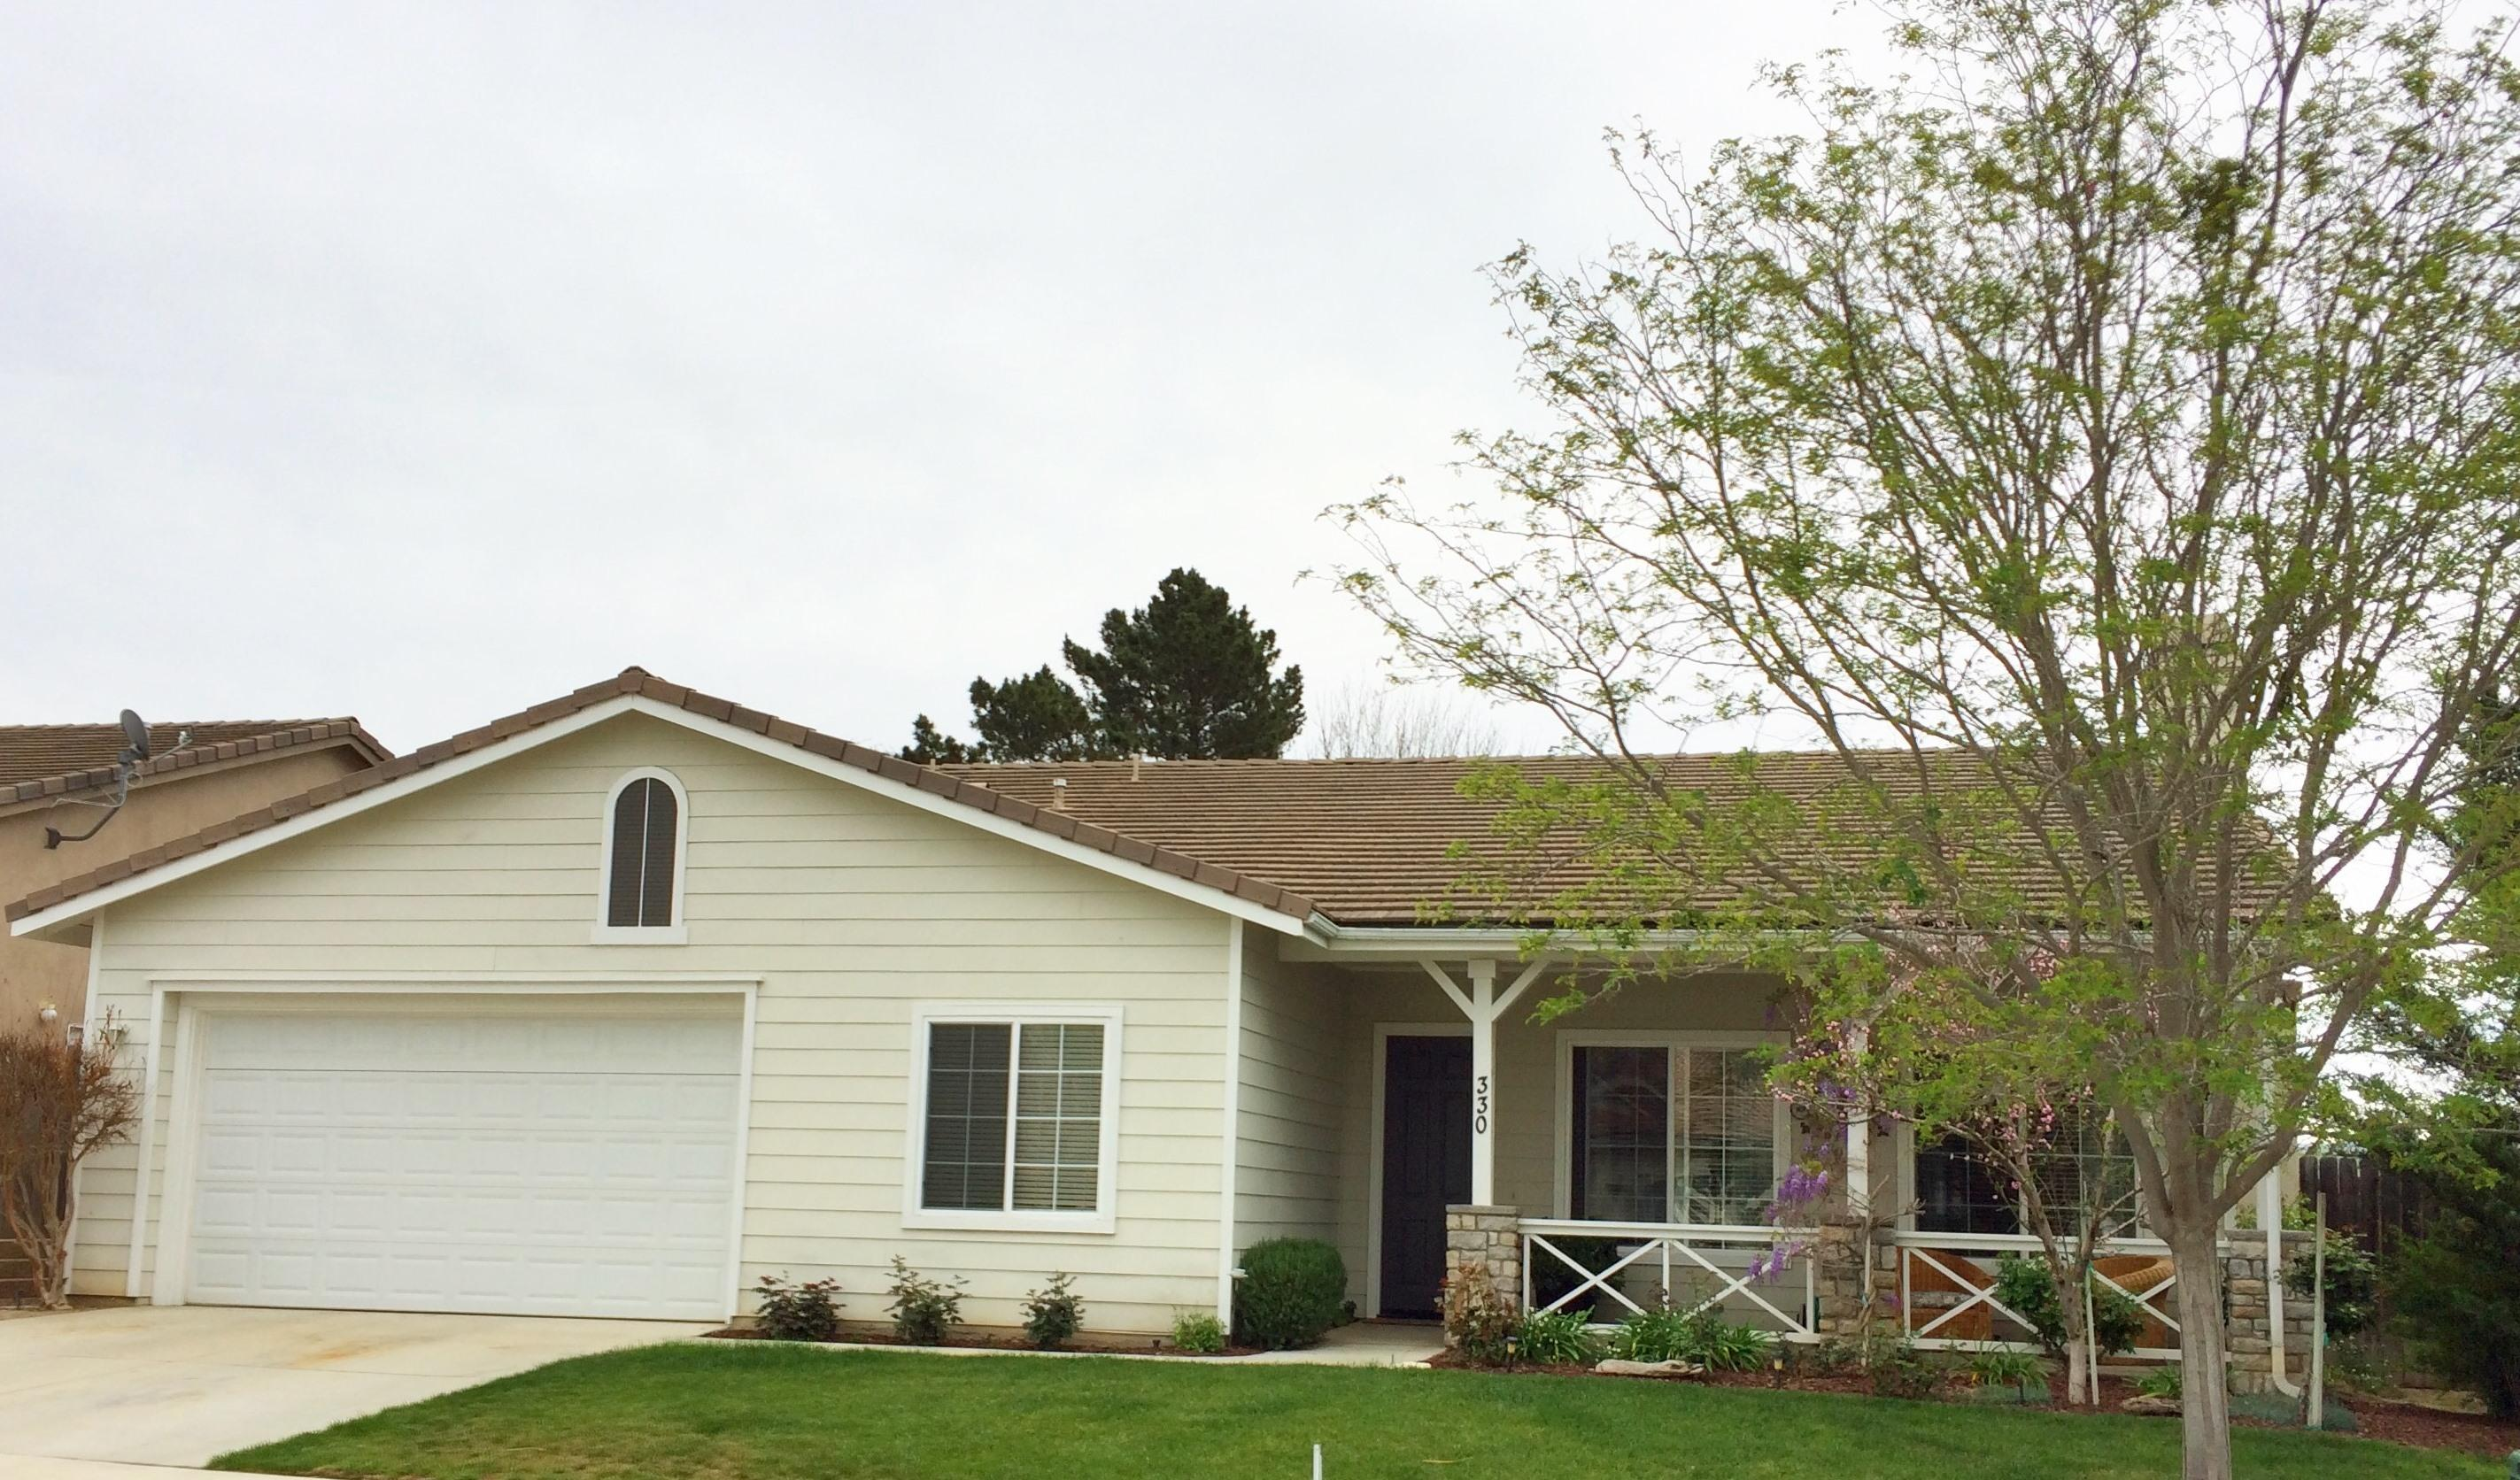 Property photo for 330 Arden Ave Buellton, California 93427 - 15-121